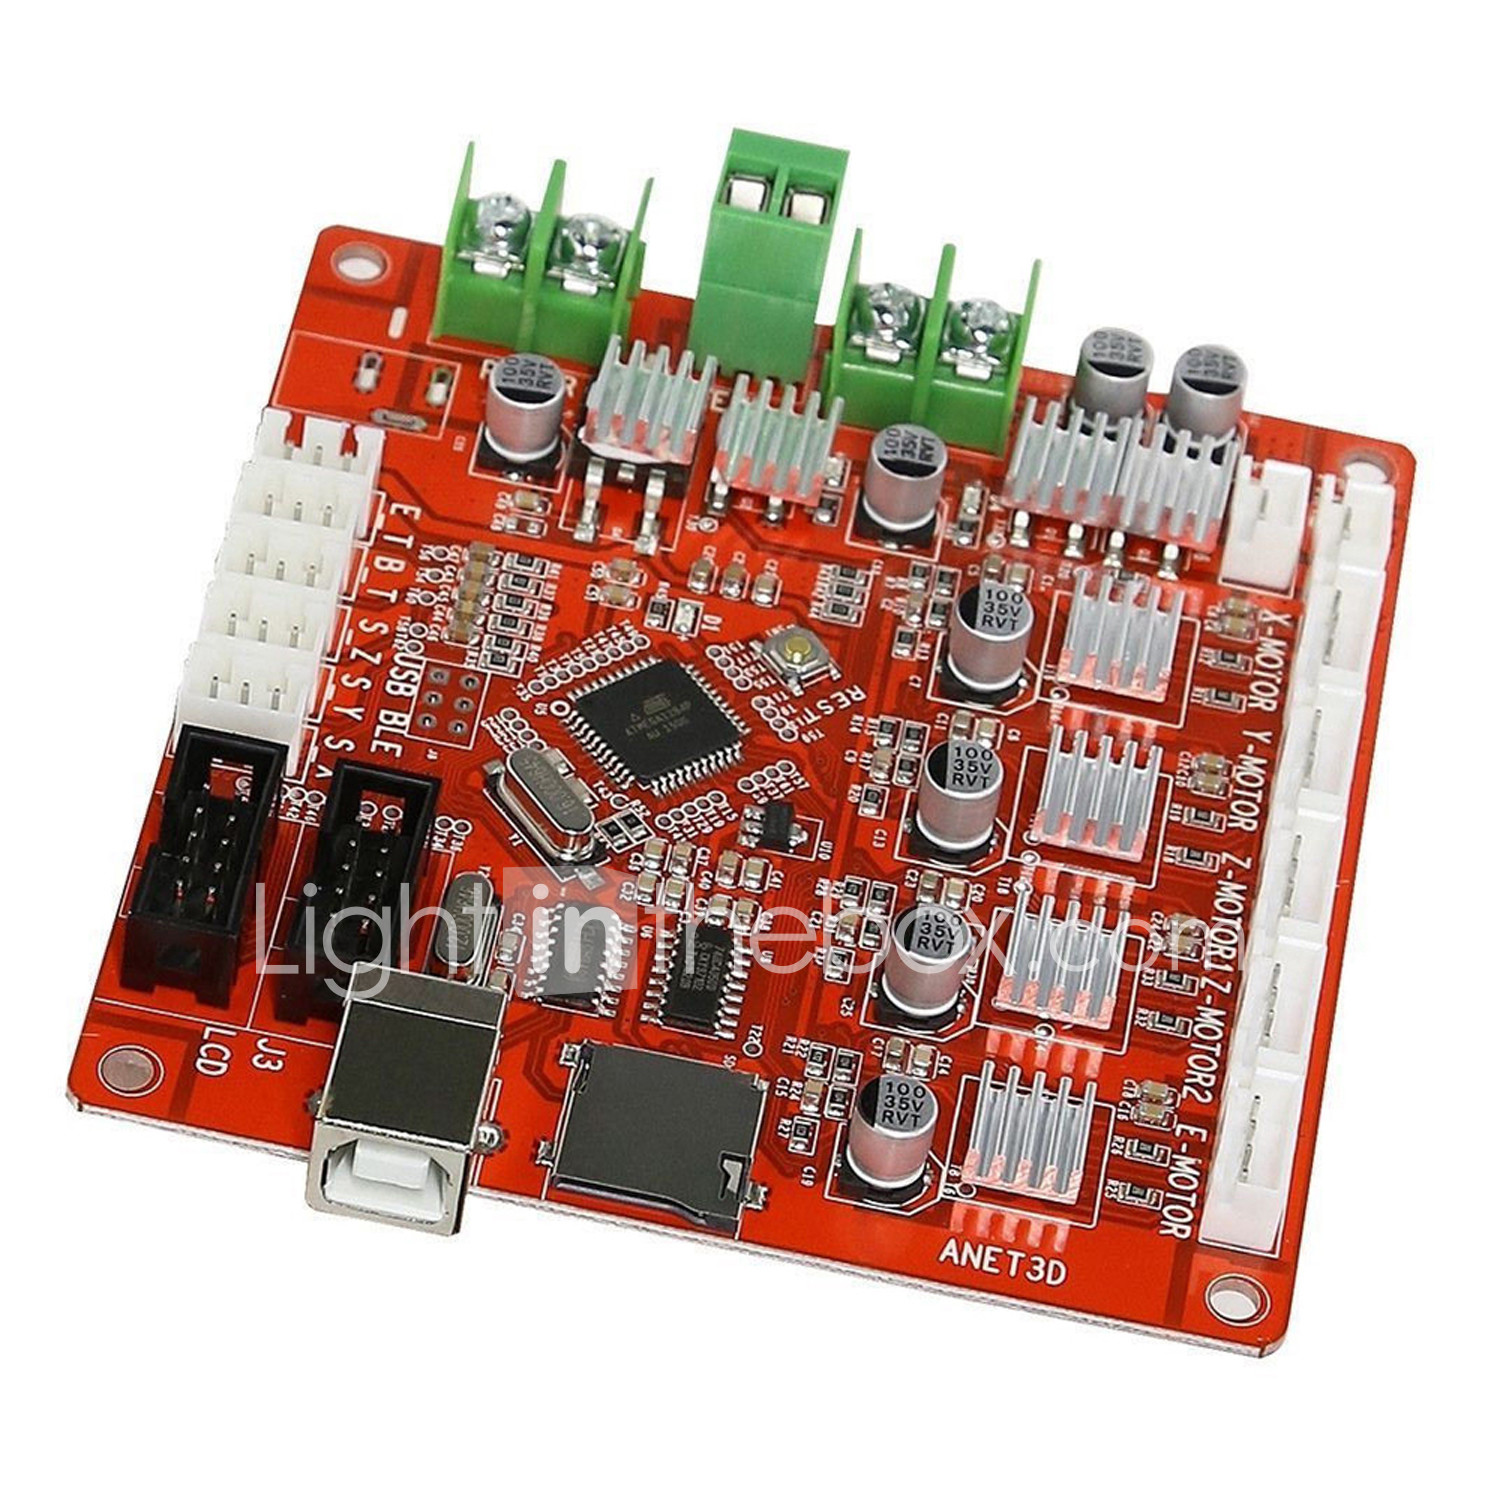 qxoo1509711656299 anet a8 3d printer mainboard anet v1 0 for reprap mendel prusa  at gsmx.co